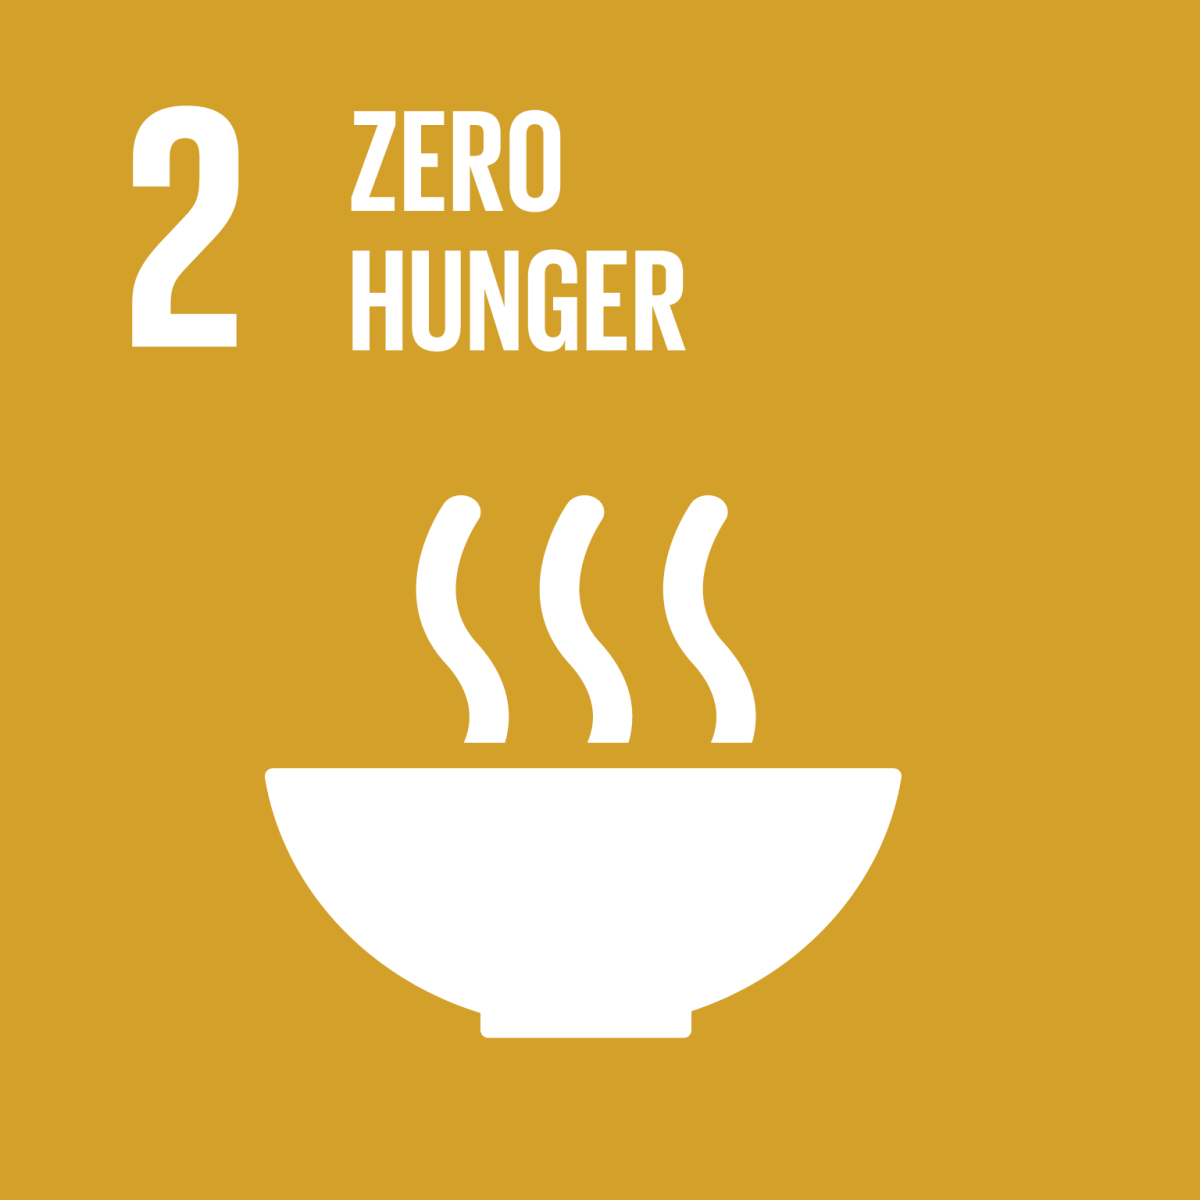 GOAL 2, ZERO HUNGER, UN's SUSTAINABLE DEVELOPMENT GOALS, HOW DO YOU FIT IN?